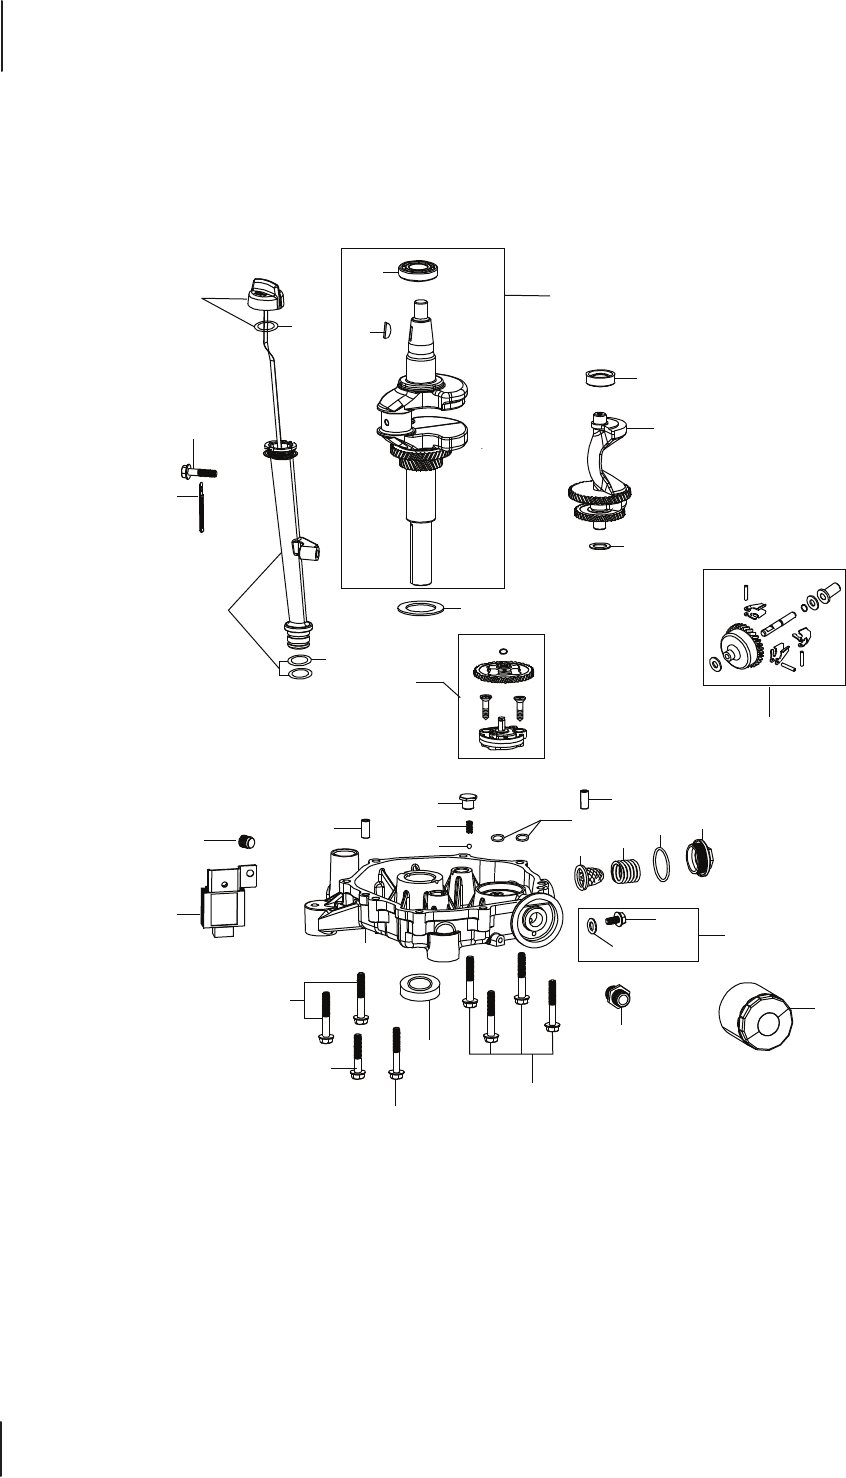 Page 40 of Cub Cadet Lawn Mower CC30 User Guide